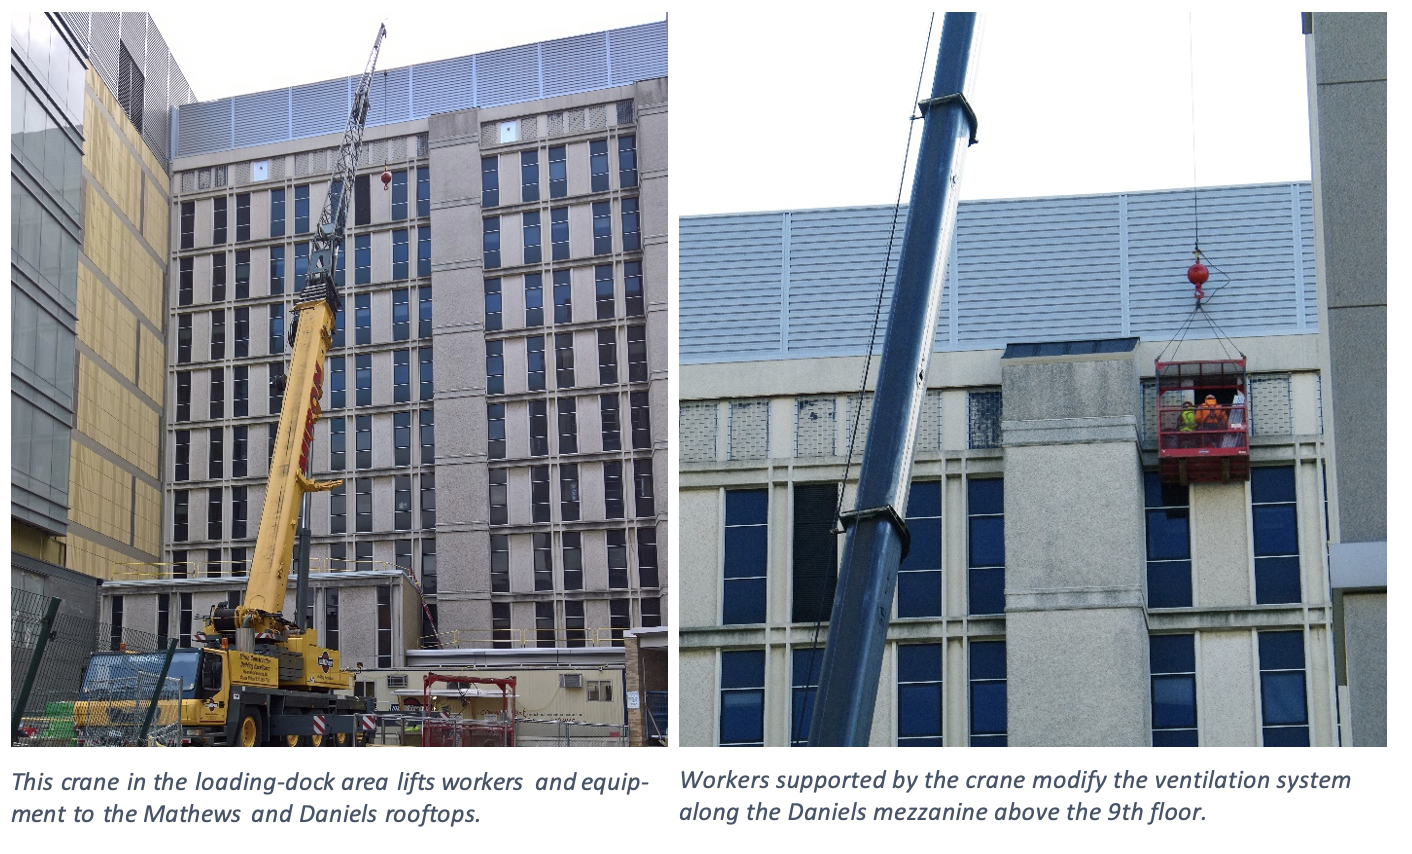 Workers supported by the crane modify the ventilation system along the Daniels mezzanine above the 9th floor.